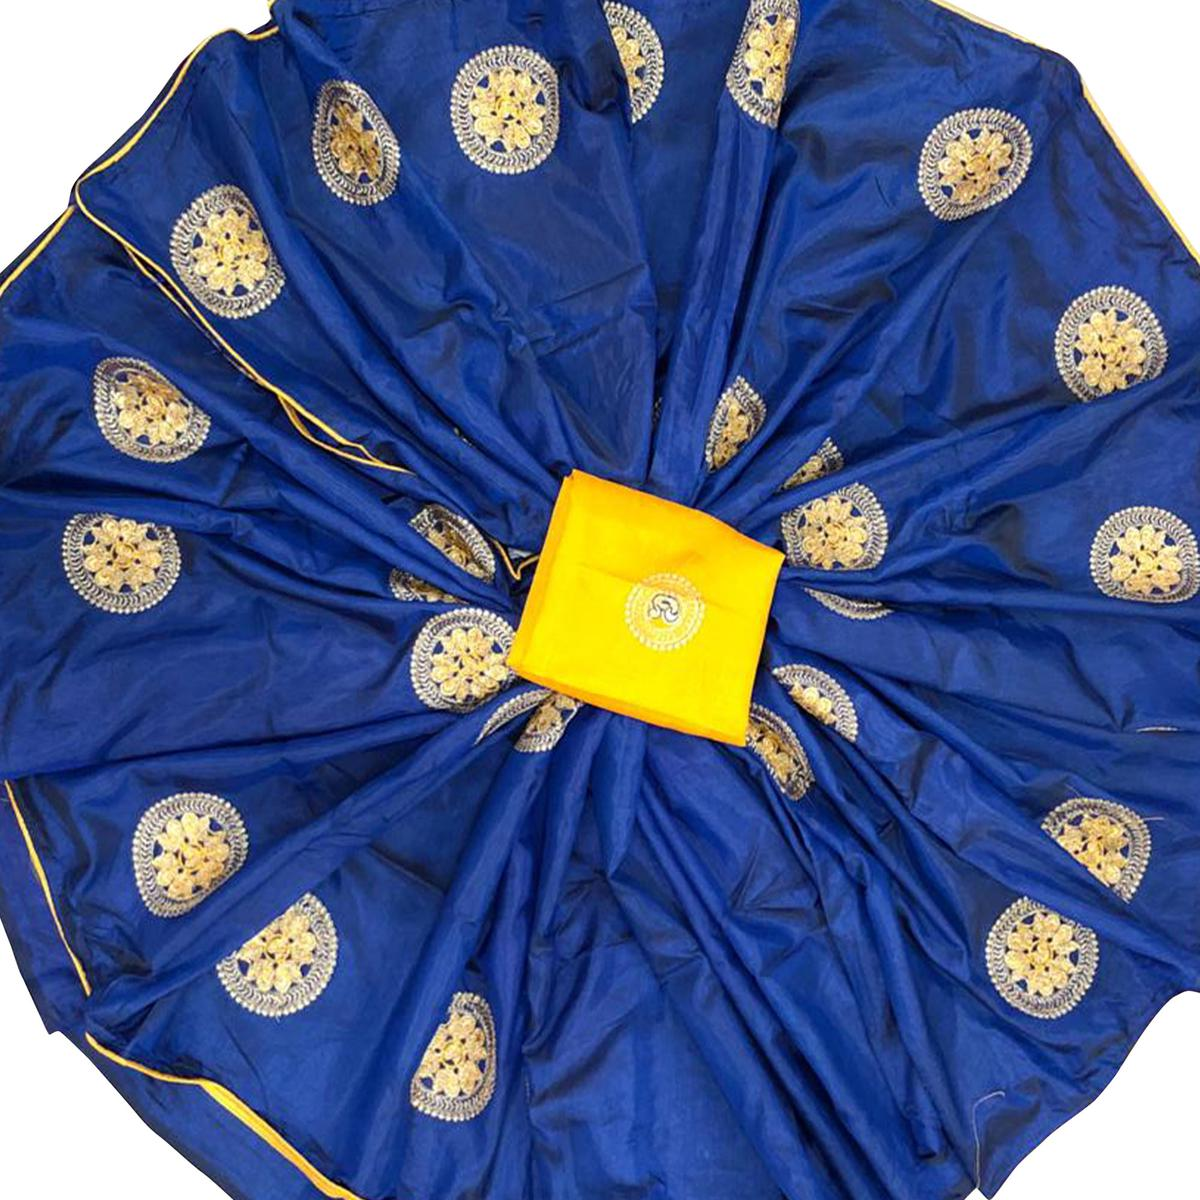 Classy Navy Blue Colored Festive Wear Embroidered Paper Silk Saree